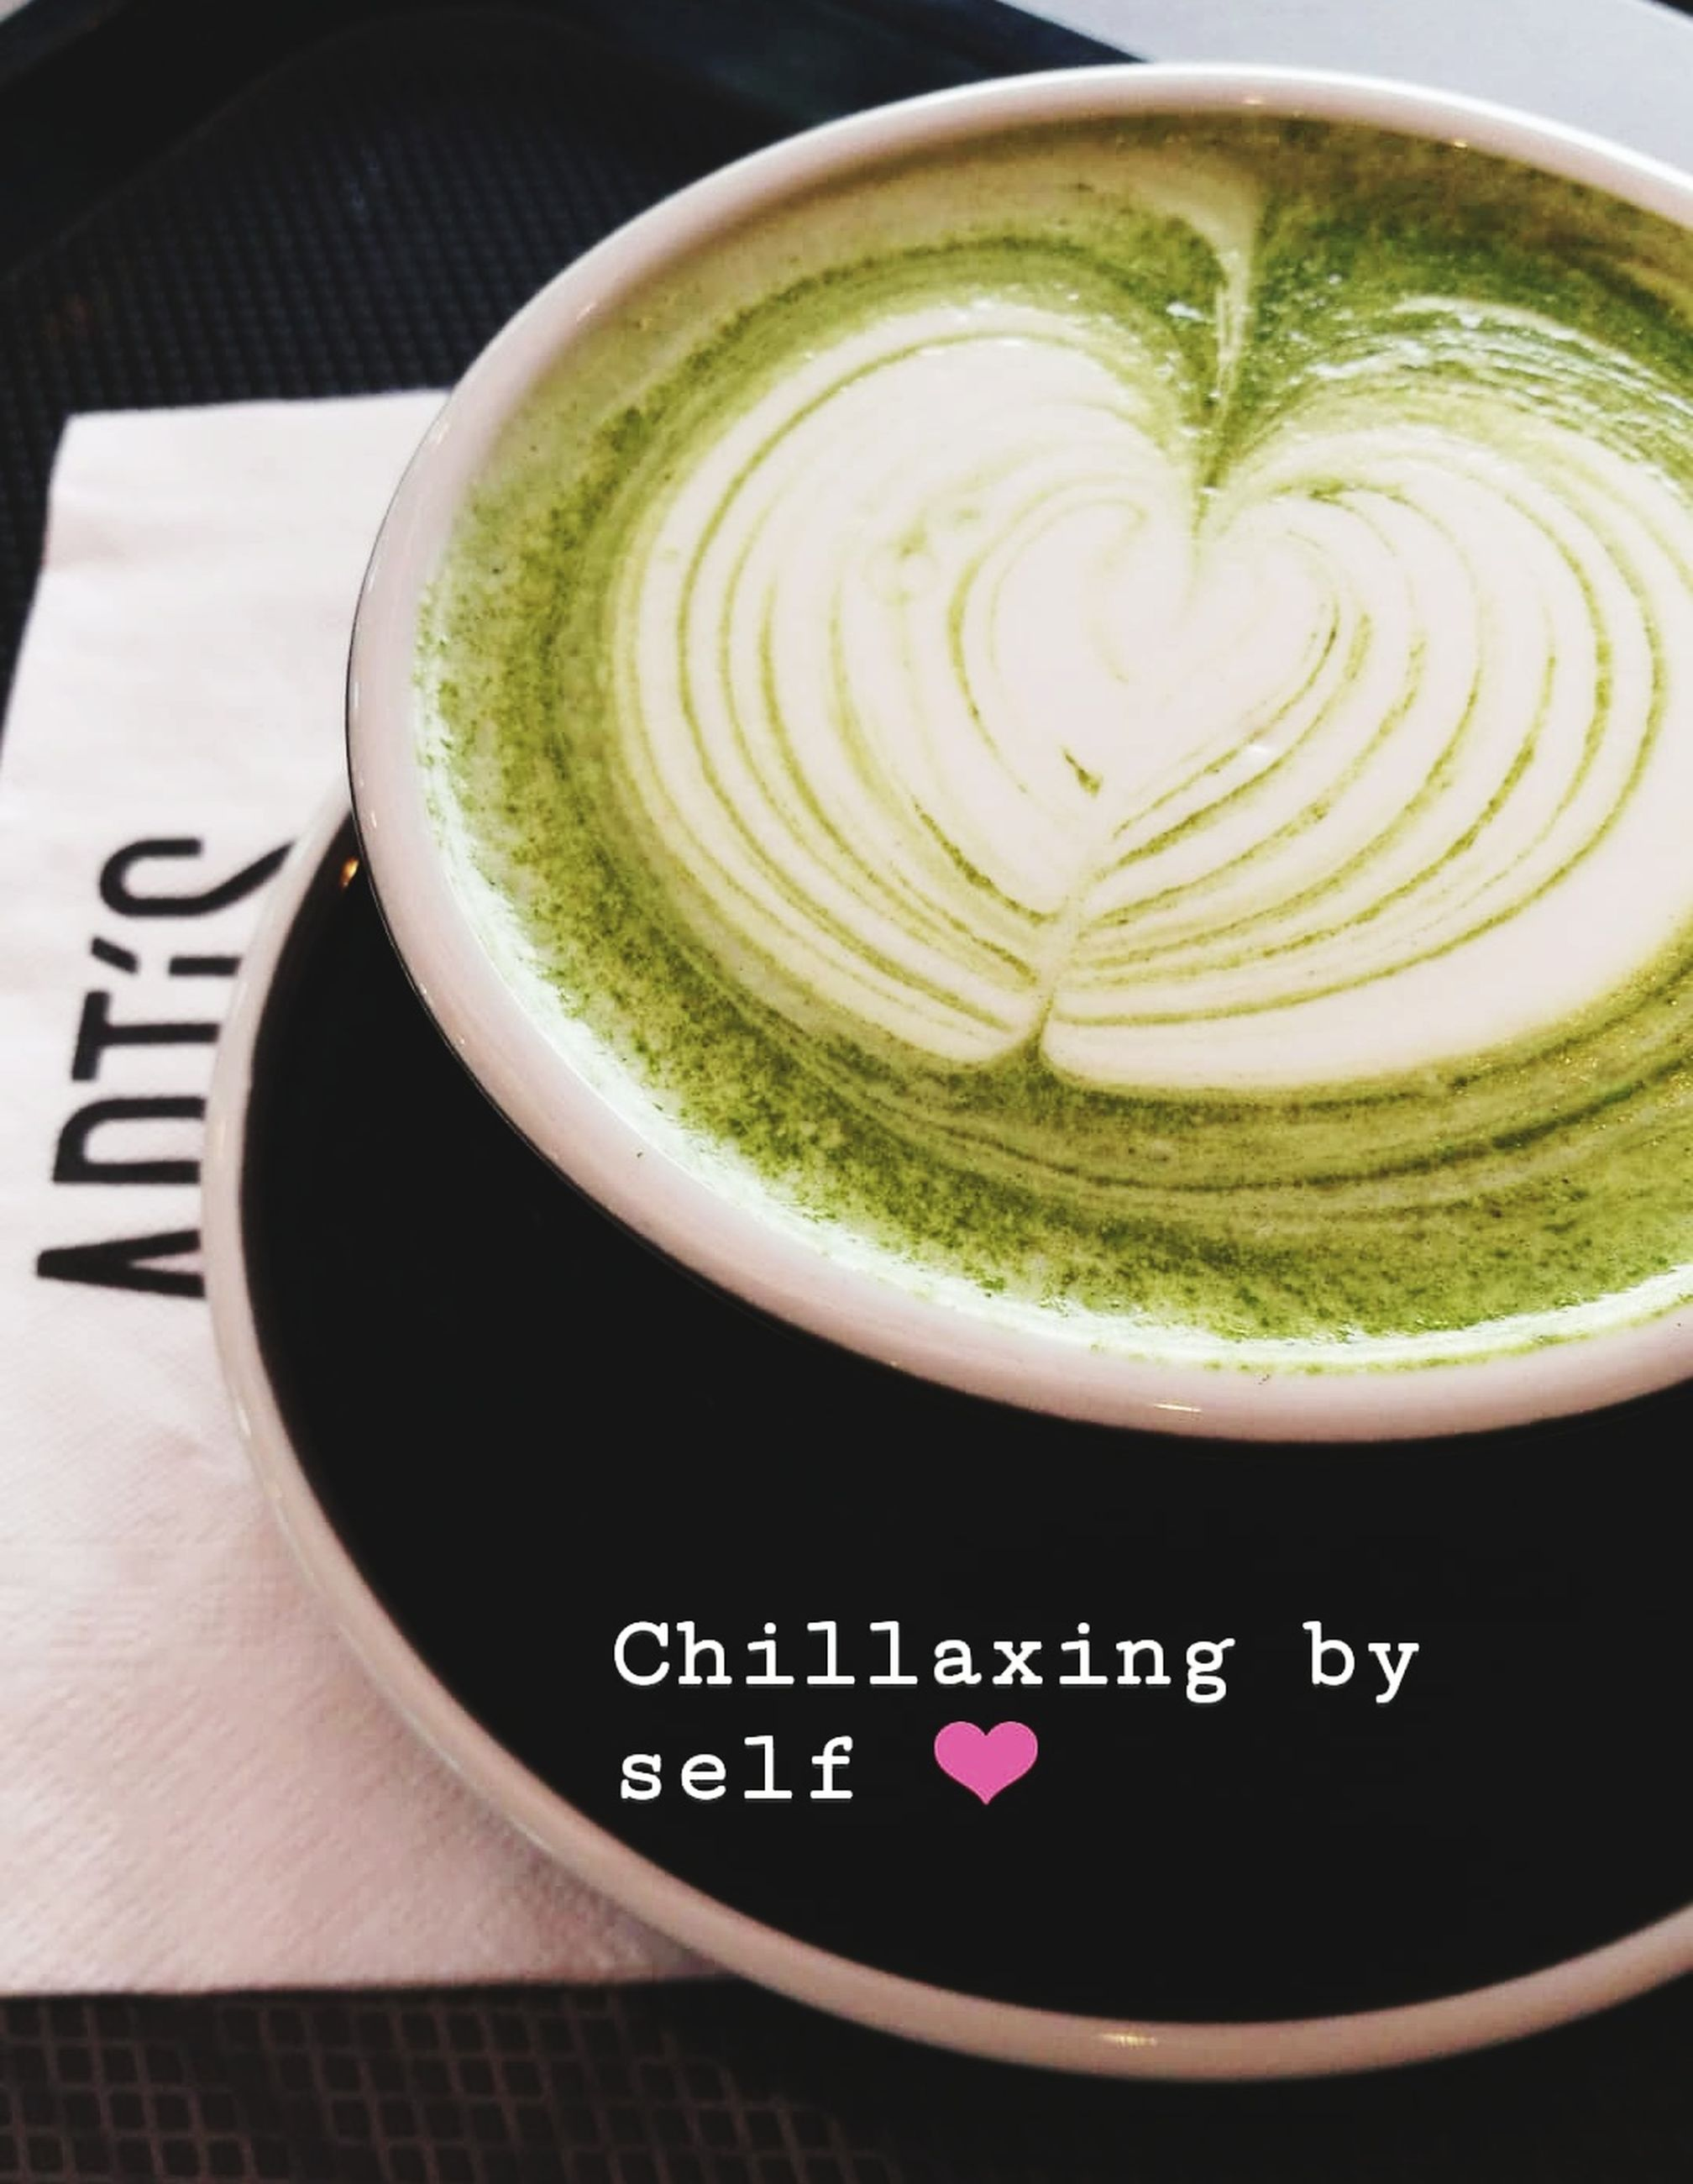 food and drink, refreshment, drink, coffee - drink, close-up, coffee, freshness, still life, cup, frothy drink, coffee cup, mug, no people, hot drink, food, indoors, matcha tea, high angle view, text, table, latte, non-alcoholic beverage